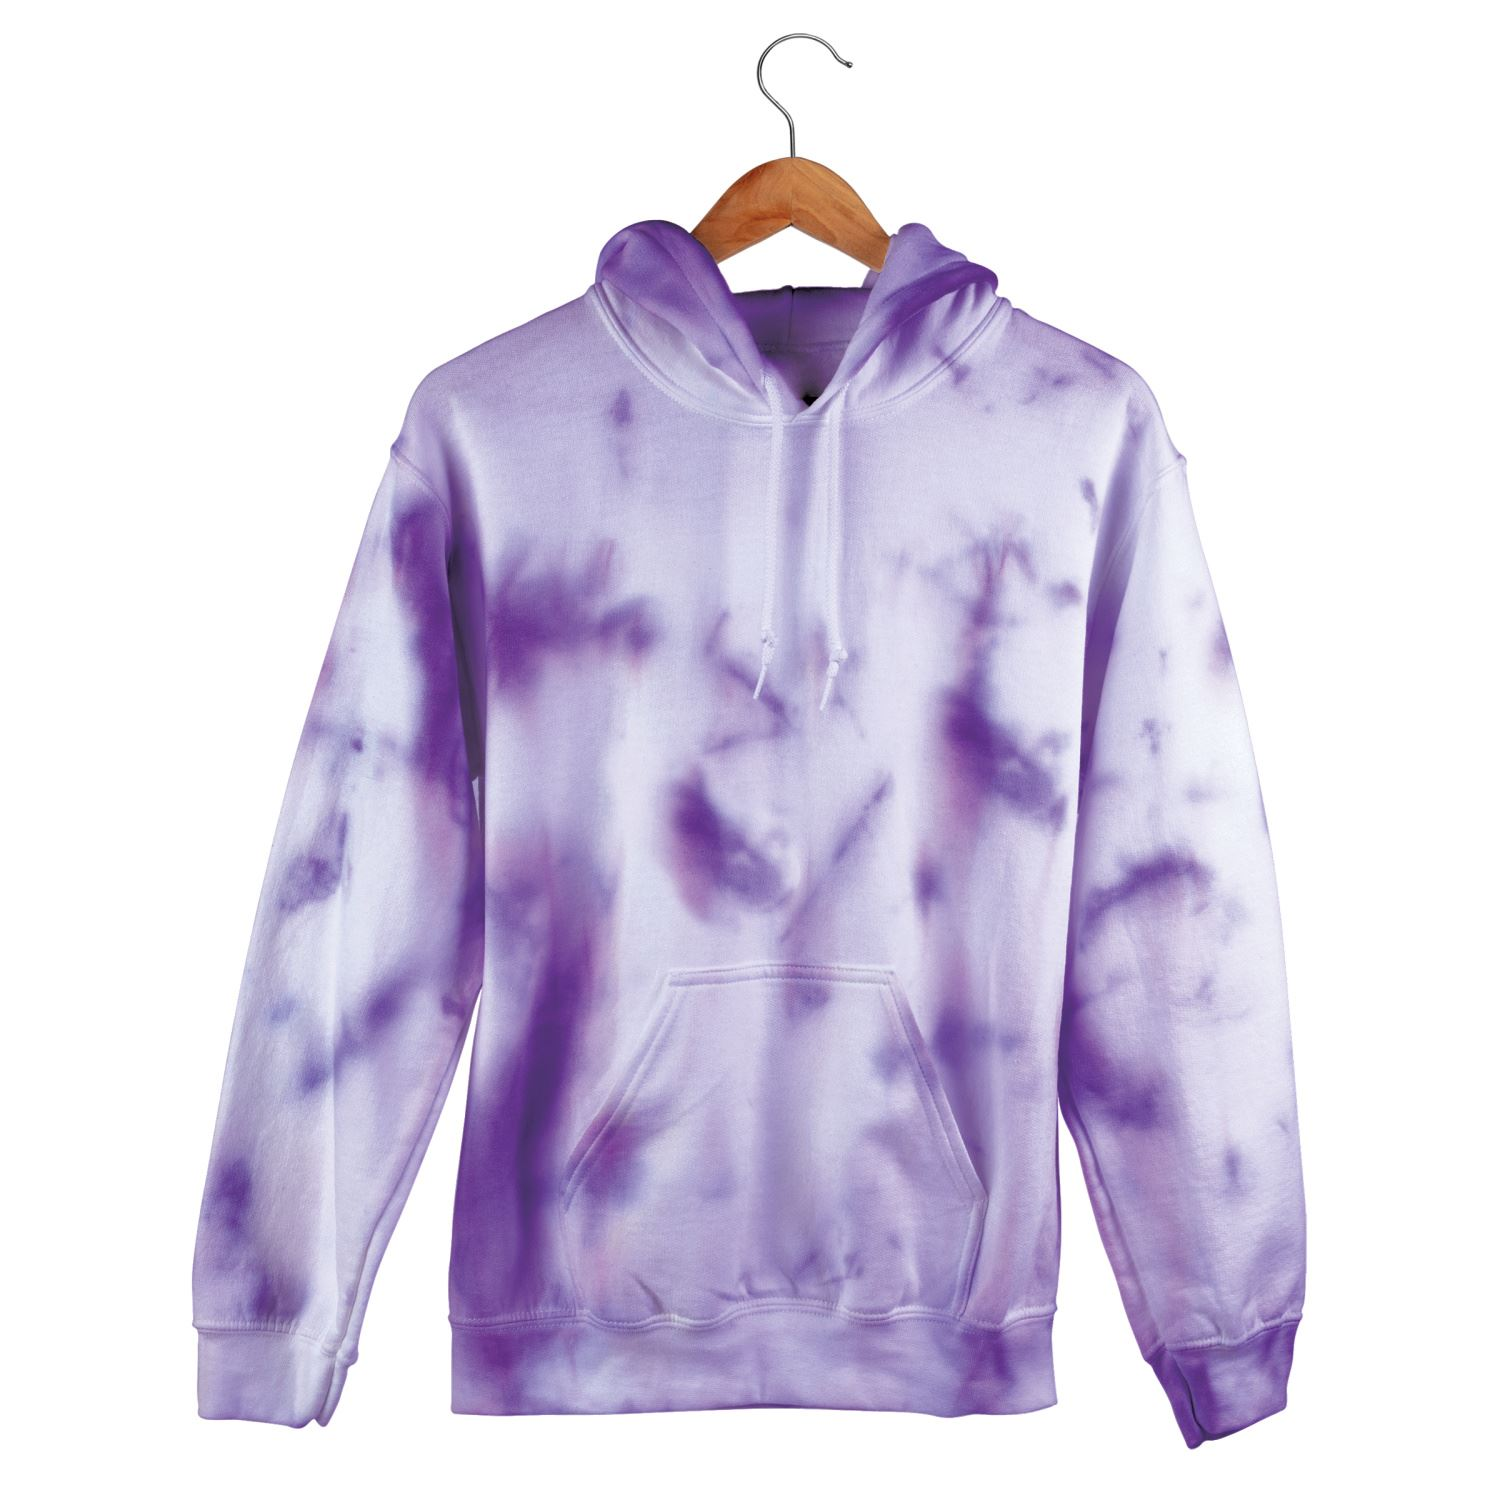 Picture of Block Party 8-Color Tie-Dye Kit